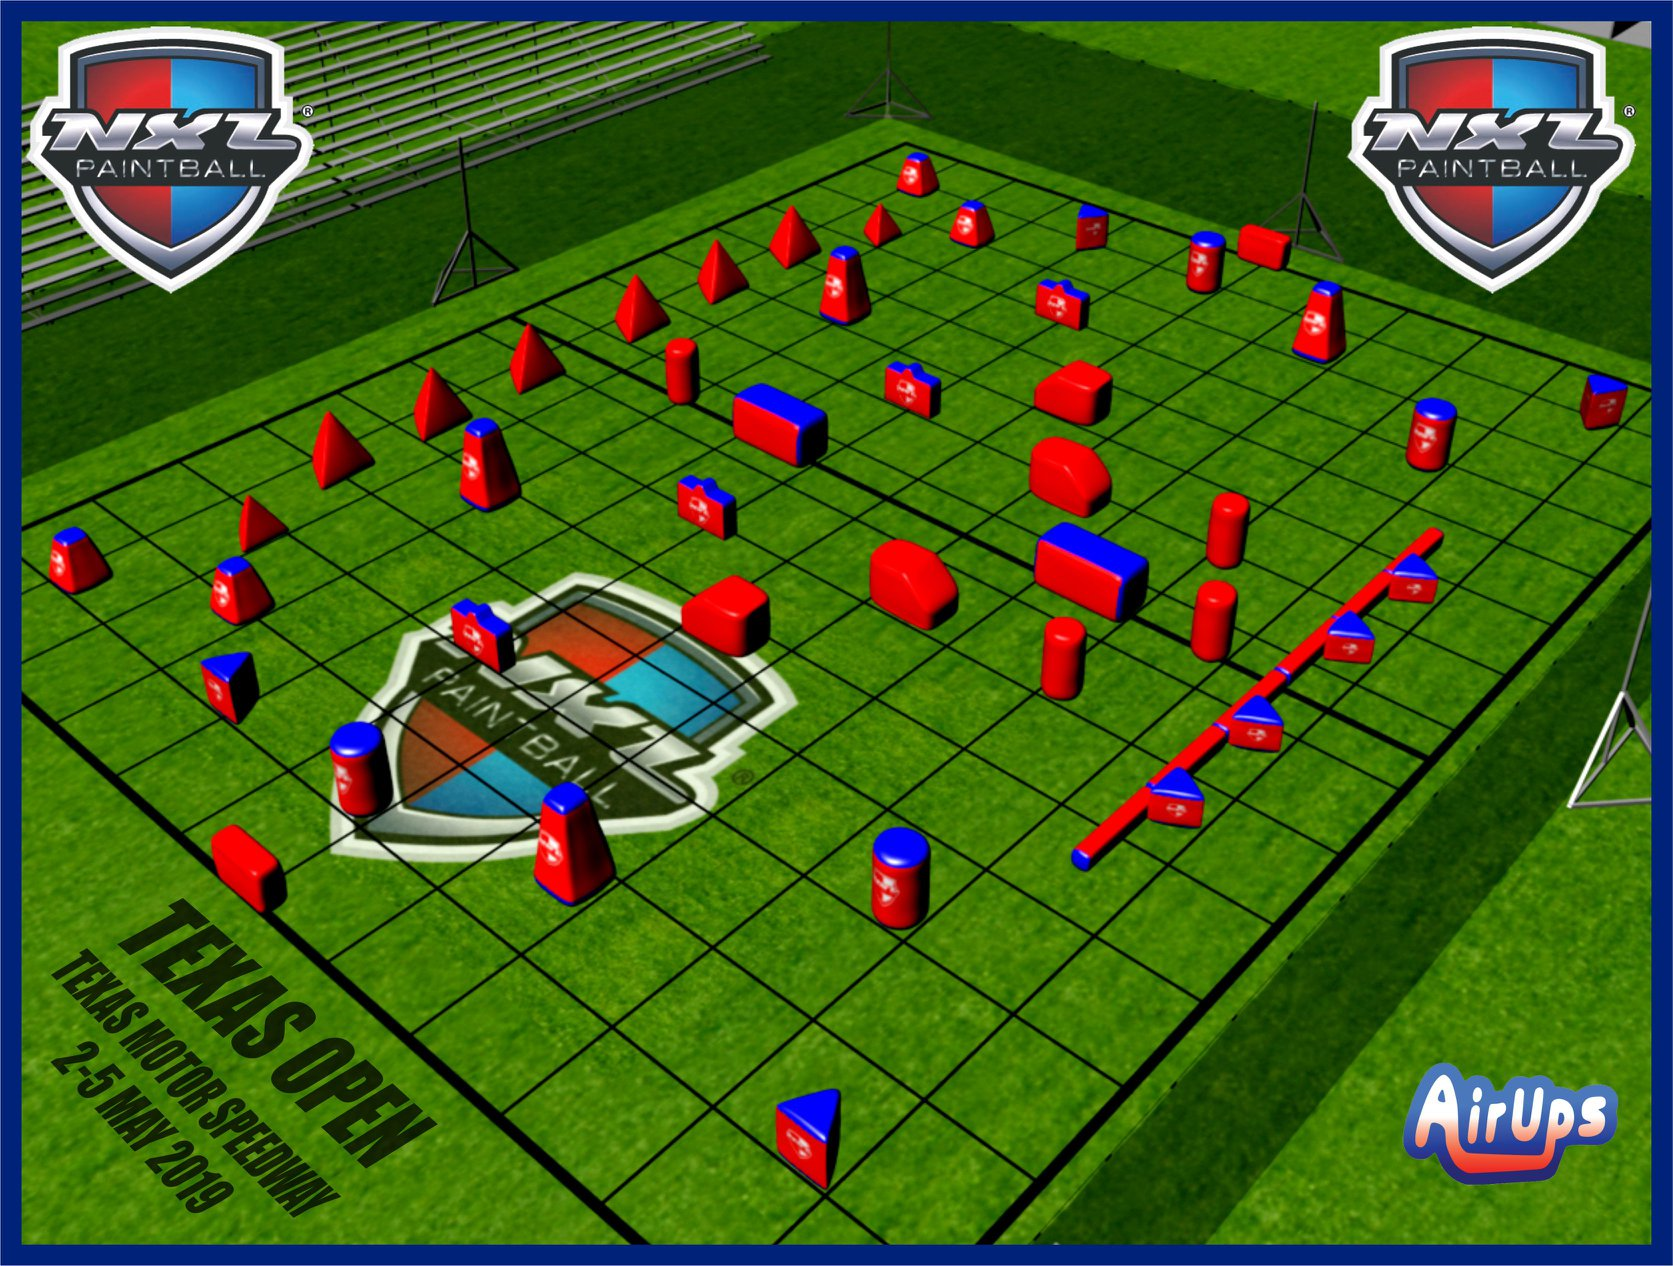 nxl2019texas_layout_2.jpg